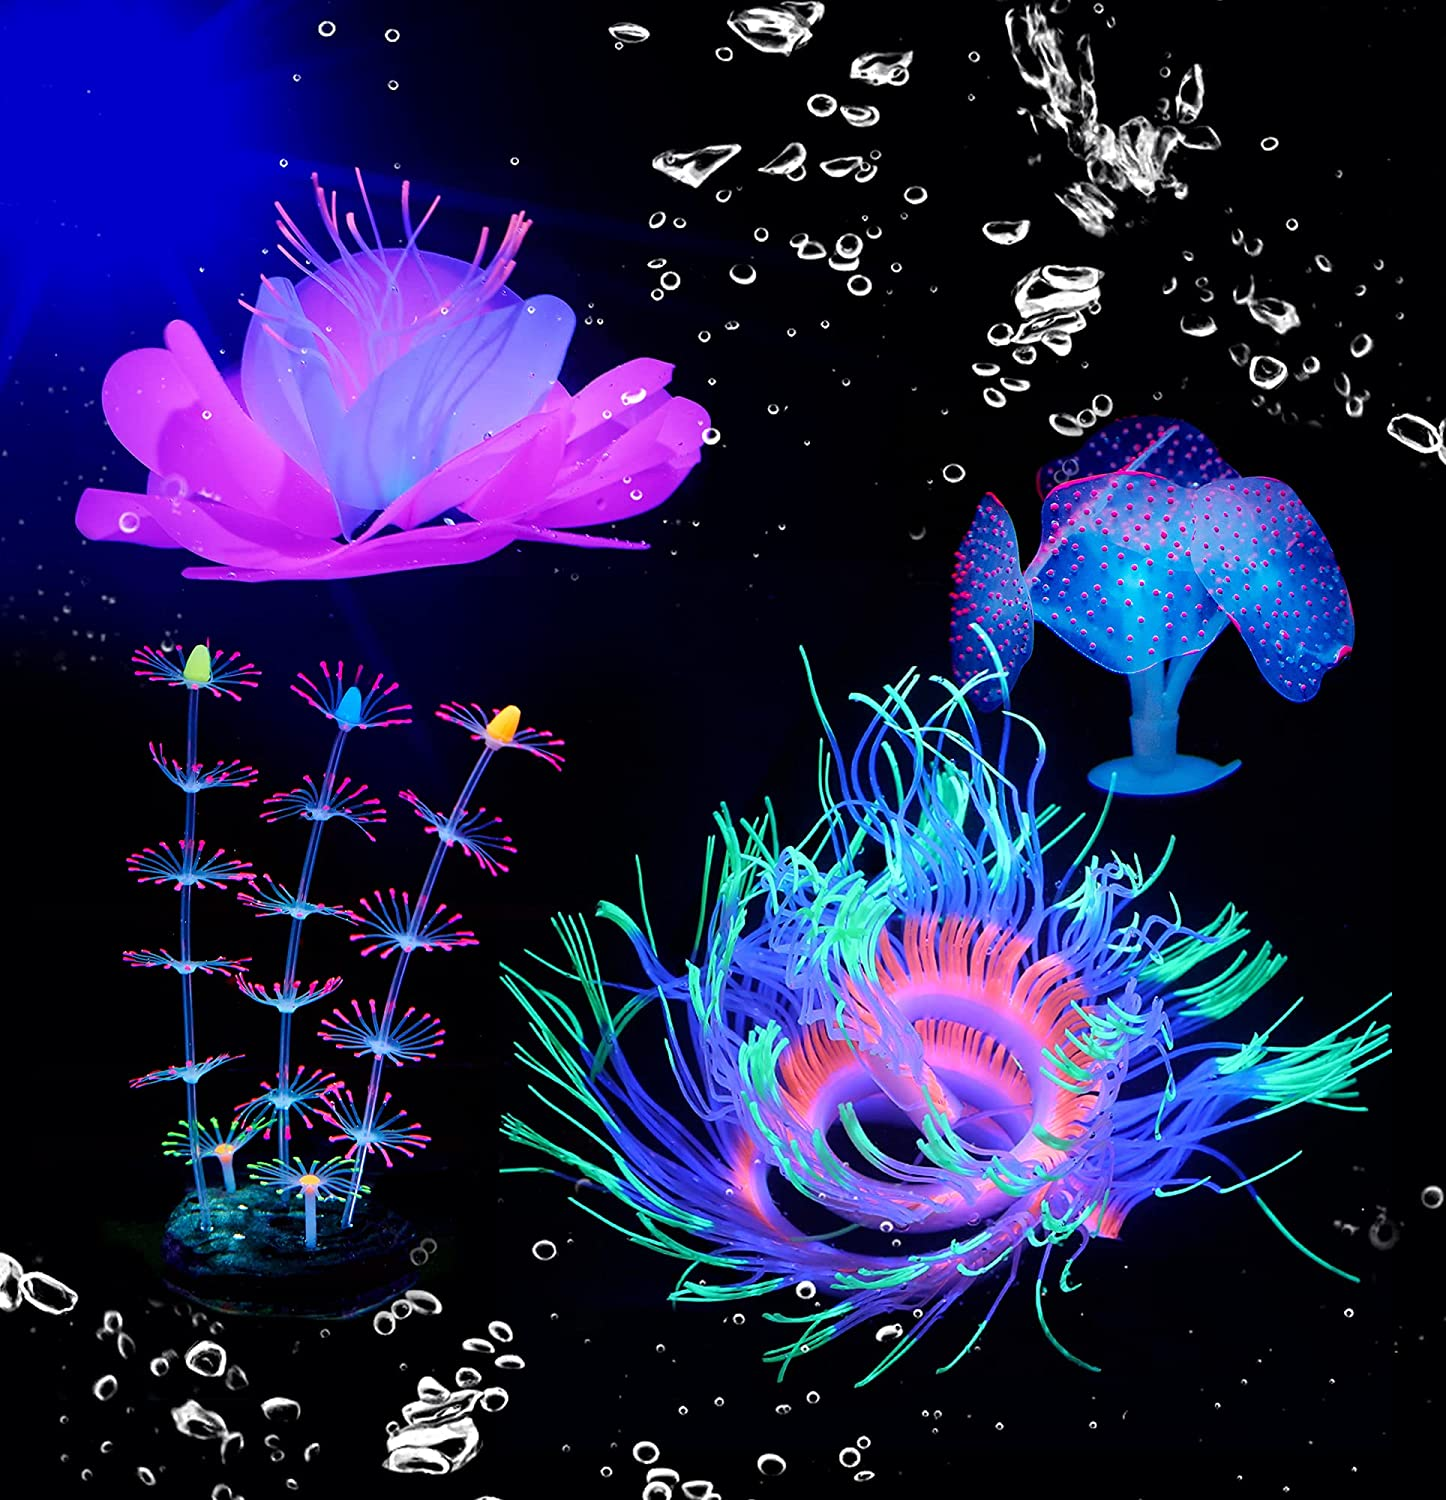 HIKTQIW 4Pcs Glowing Fish Tank Decorations Plants with Silicone Simulation Decoration for Fish Tank with Sucker Coral Sea Anemone Lotus Branch Coral